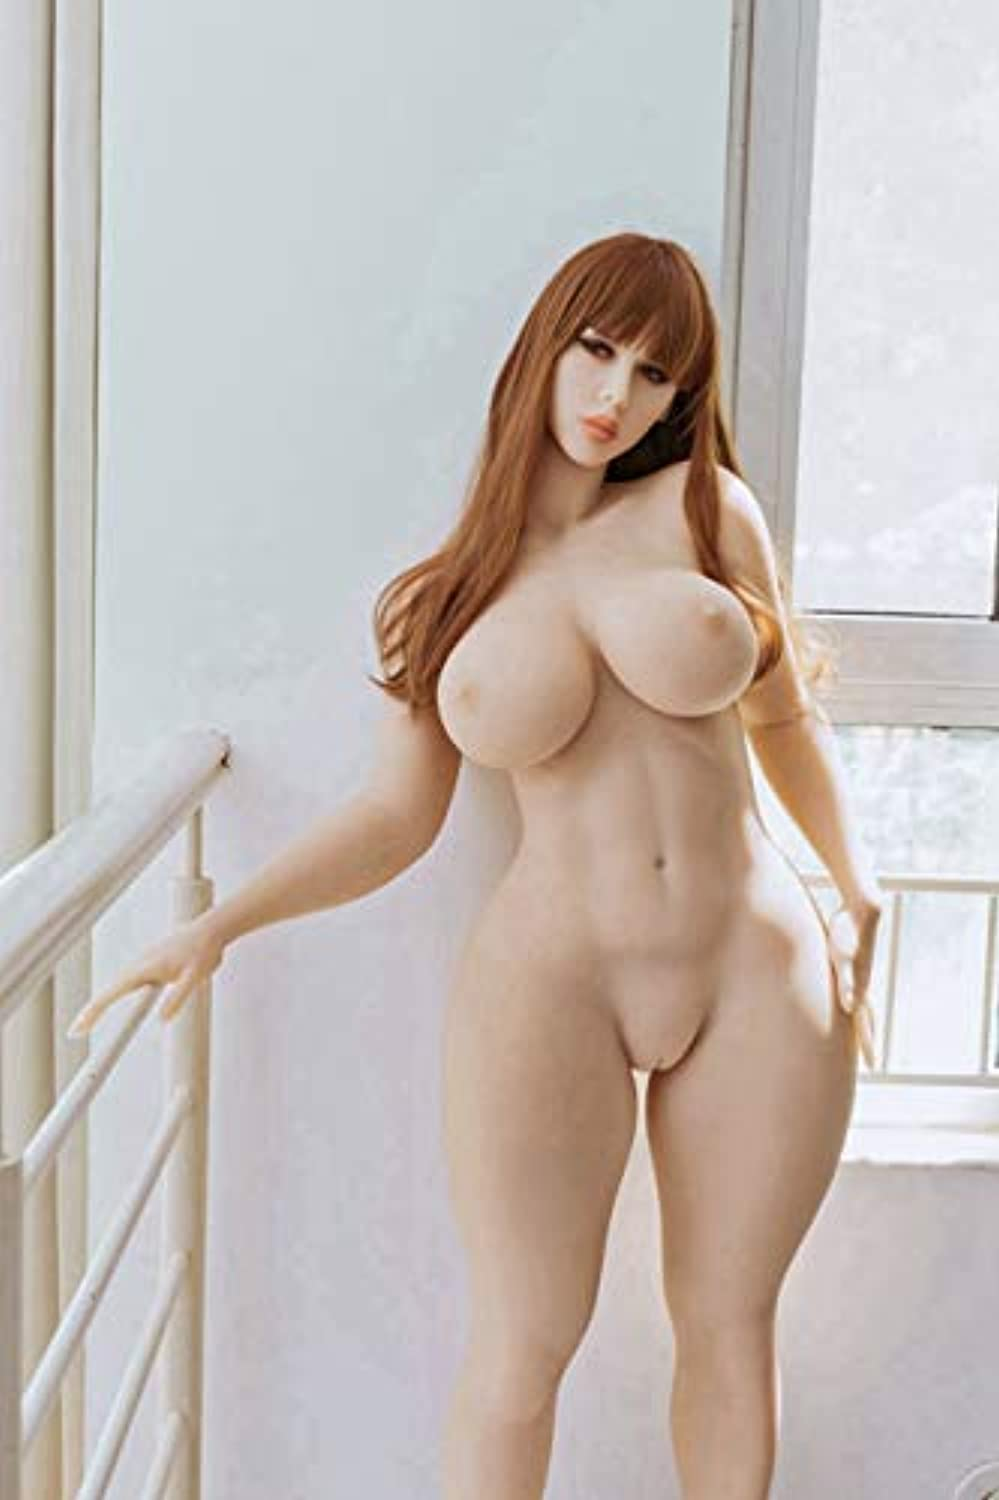 163cm/5.34ft Waterproof Lifelike Full Size 3D Realistic Real S'ëx Life Love Do-ll Silicone TPE Solid Toys Doles Adûllt Torso Mästürbatõr 3 Openings Dóllls for Men Male TFFB002